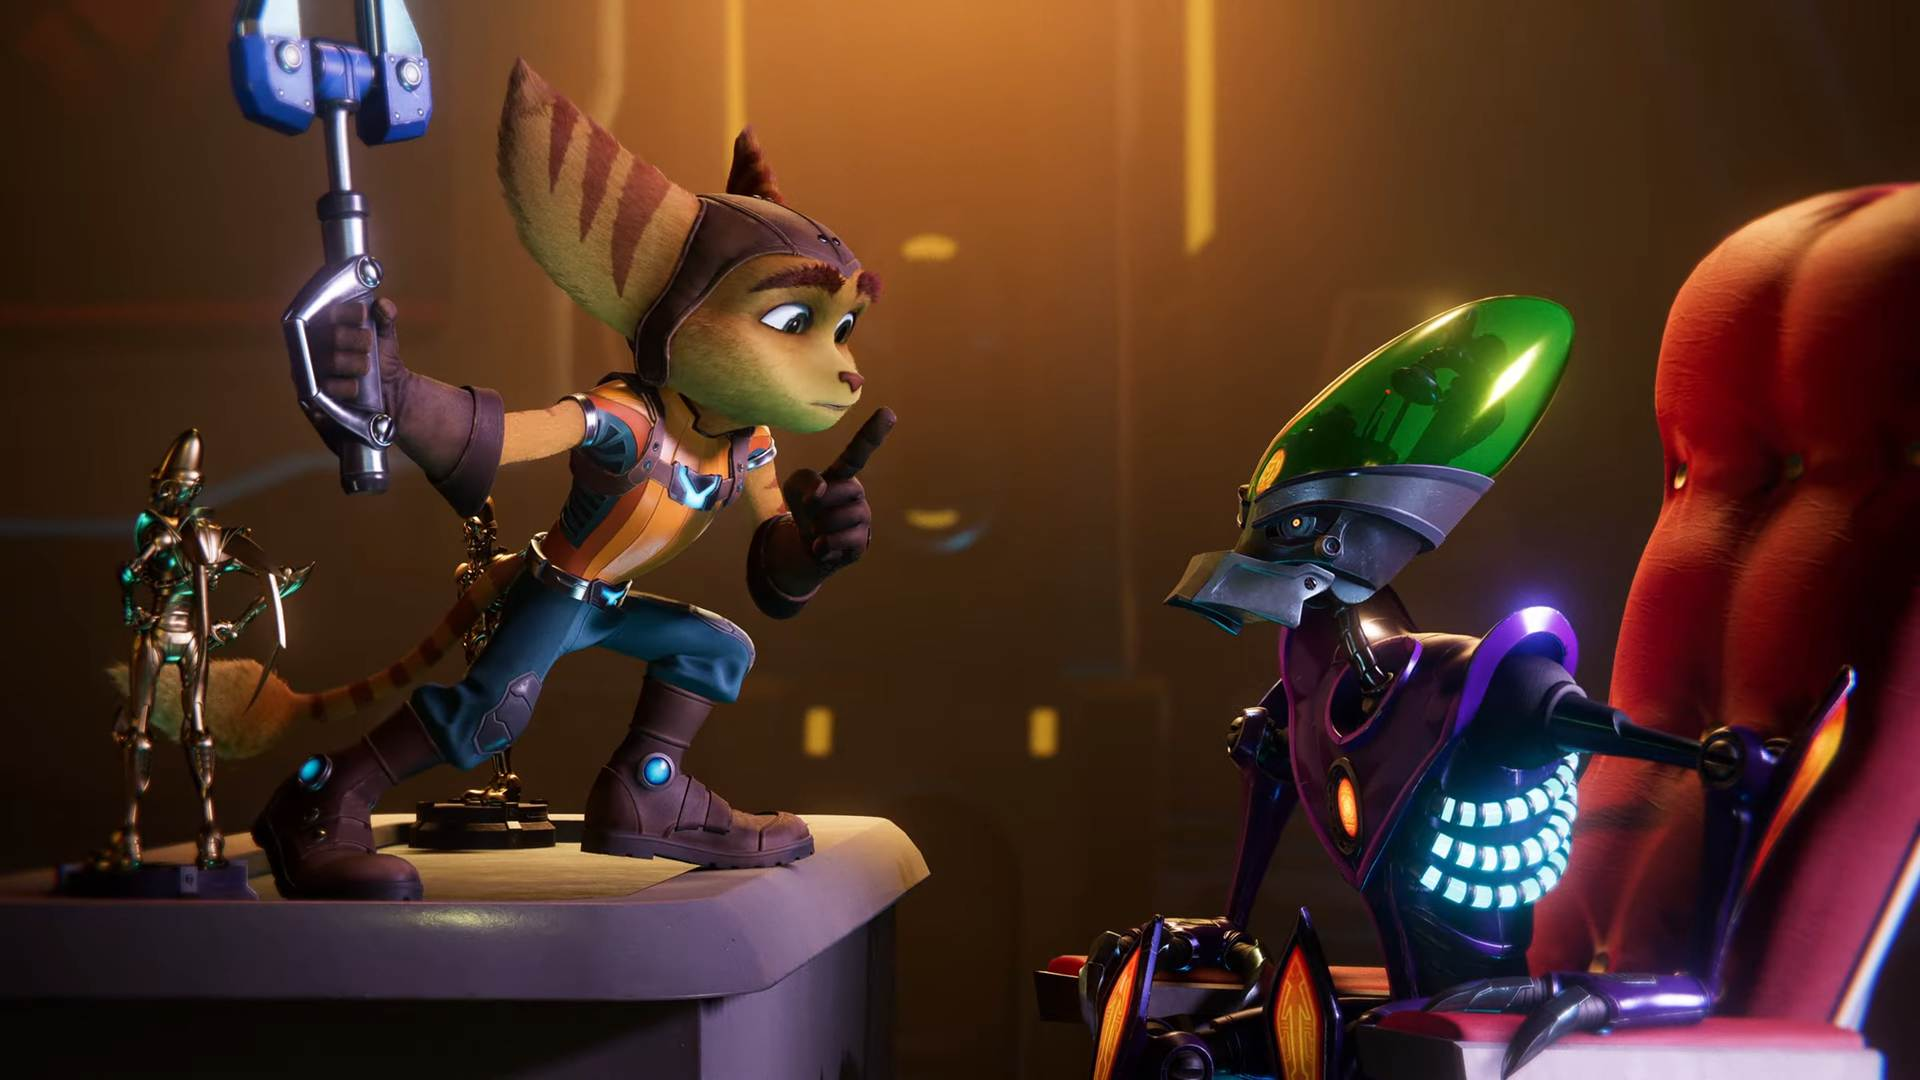 A Ratchet & Clank-focused State of Play is on the way screenshot